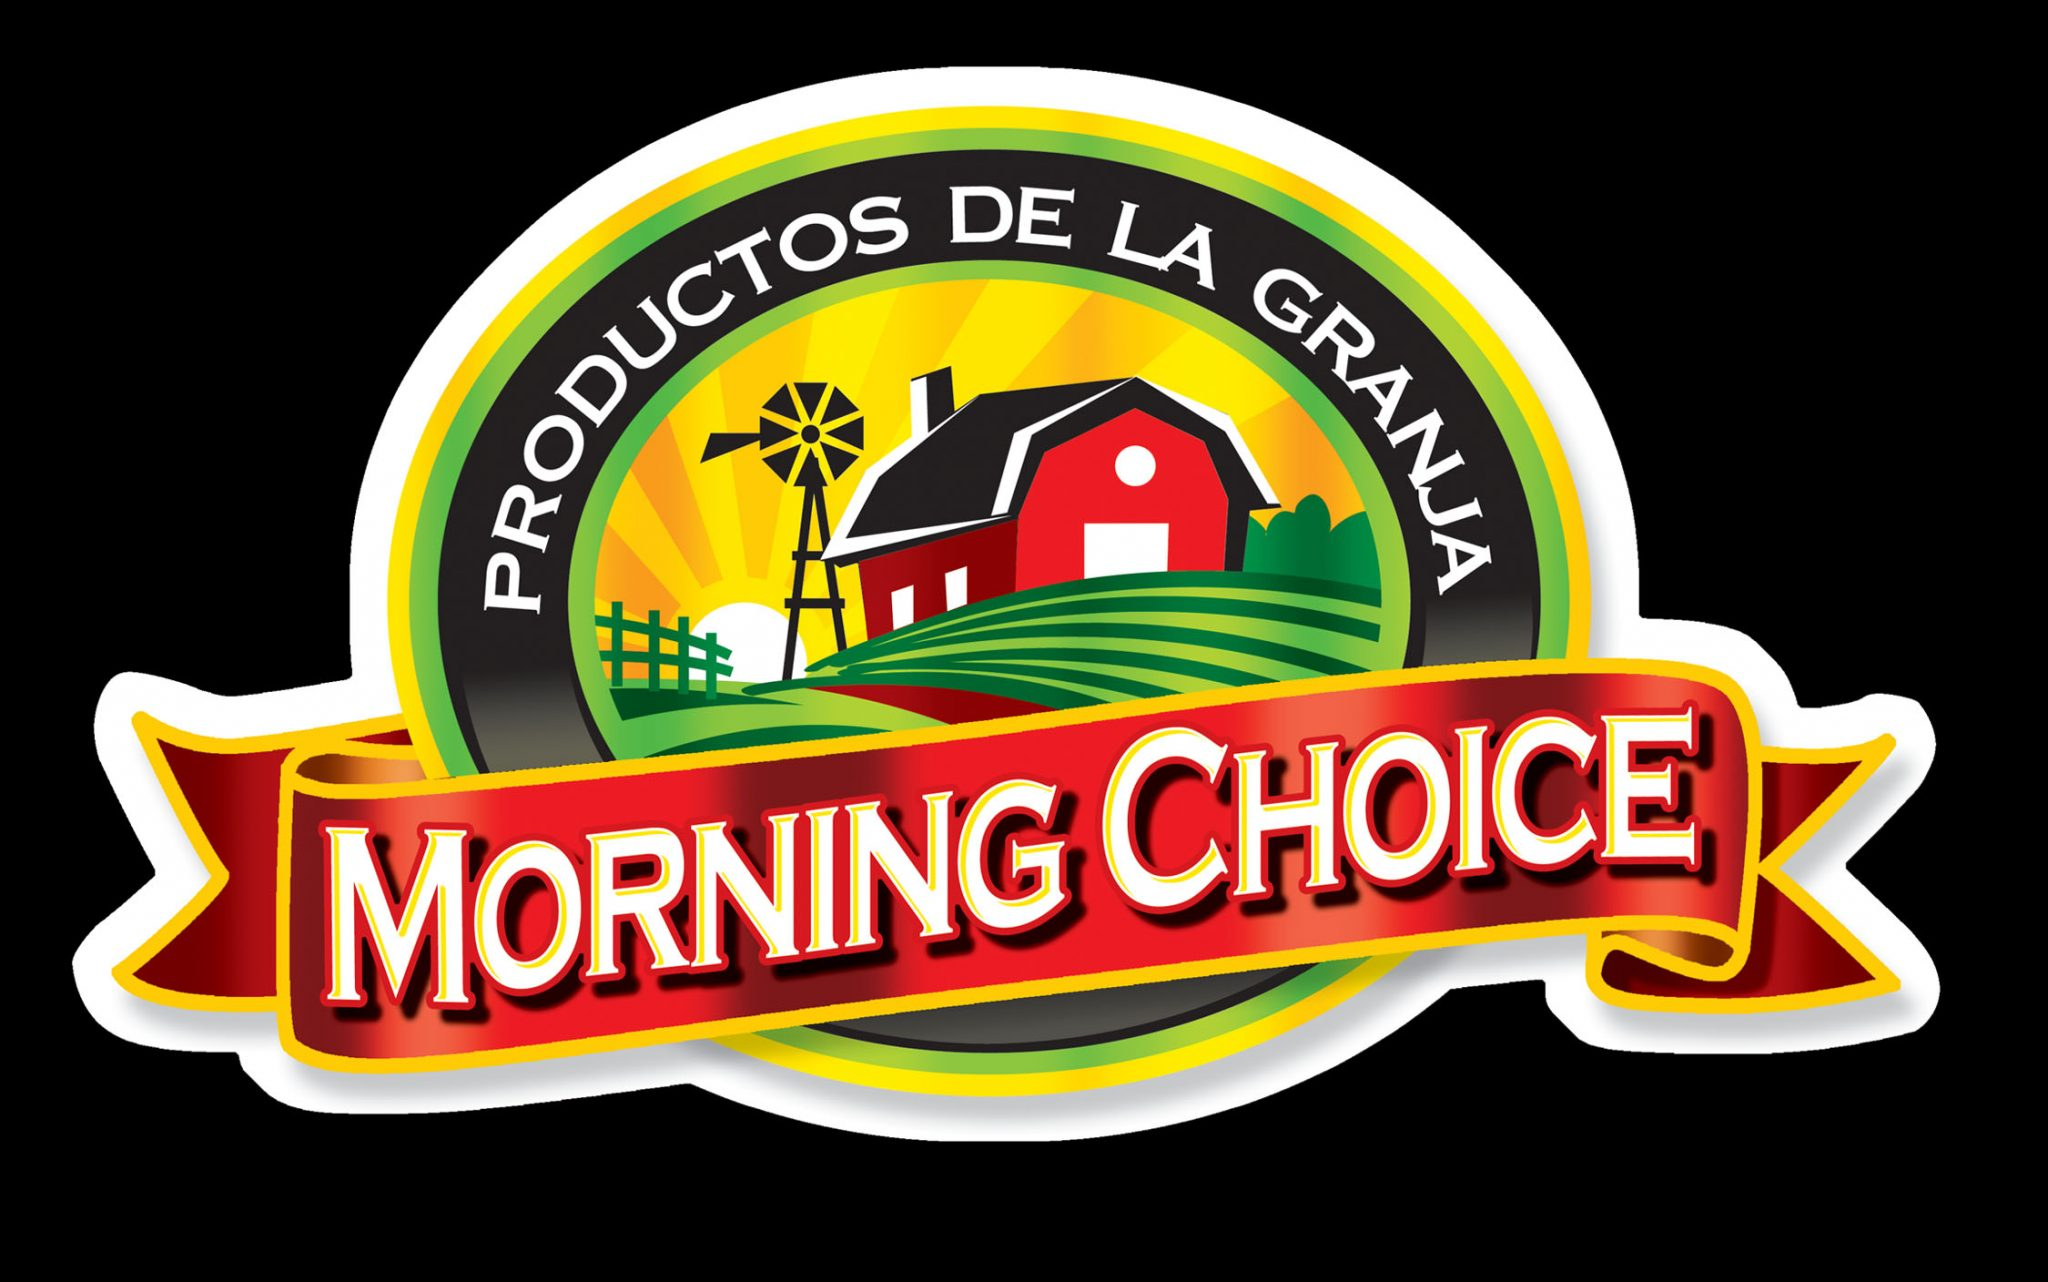 LOGO MORNING CHOICE